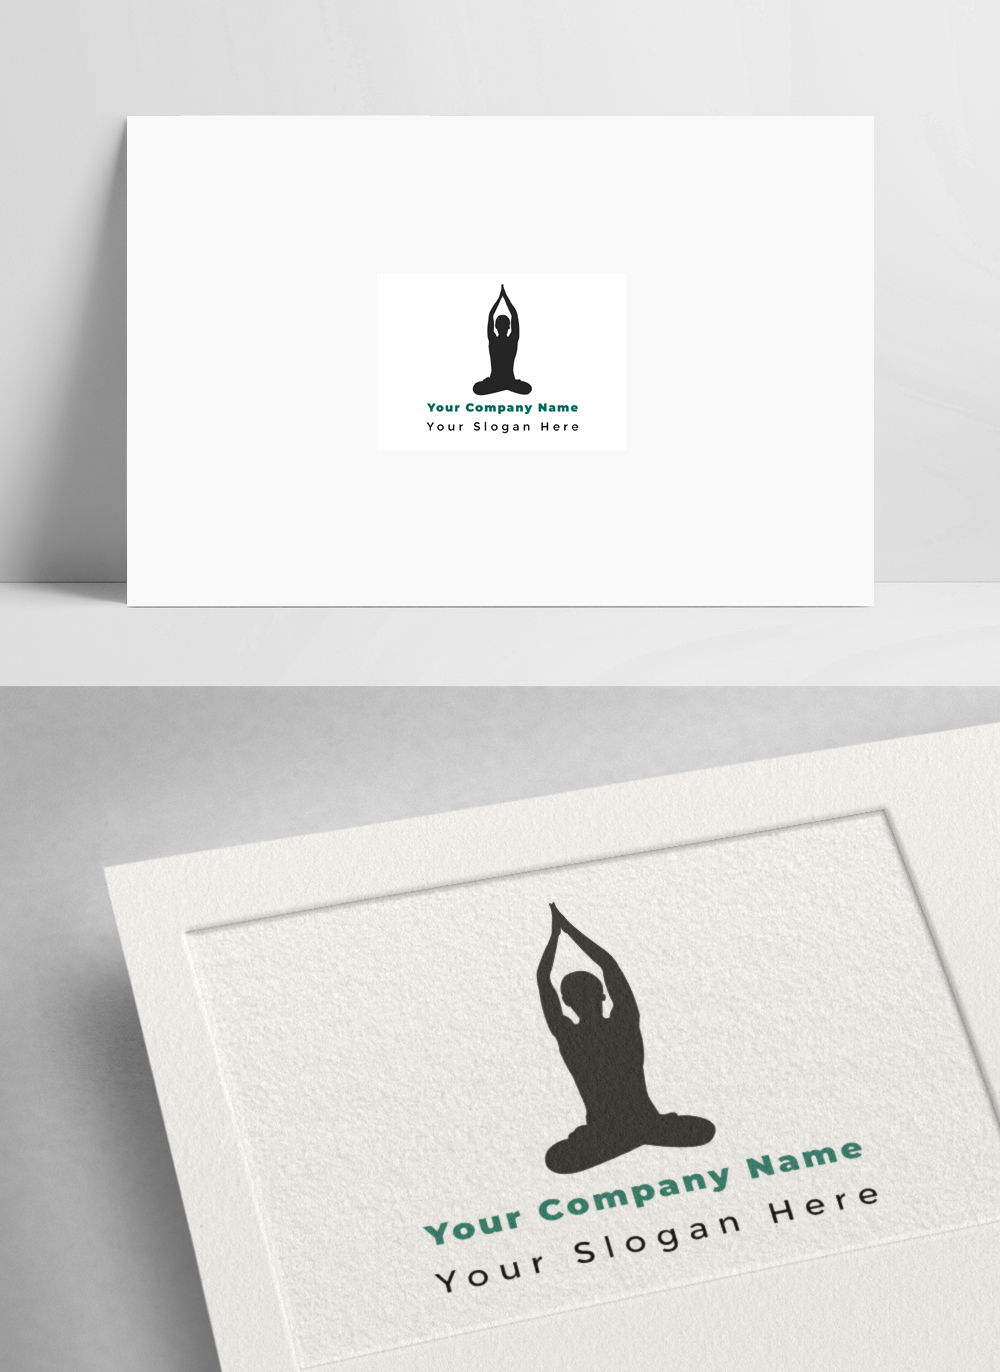 Latest Concise Woman Yoga Logo Template Image Picture Free Download 450030233 Lovepik Com